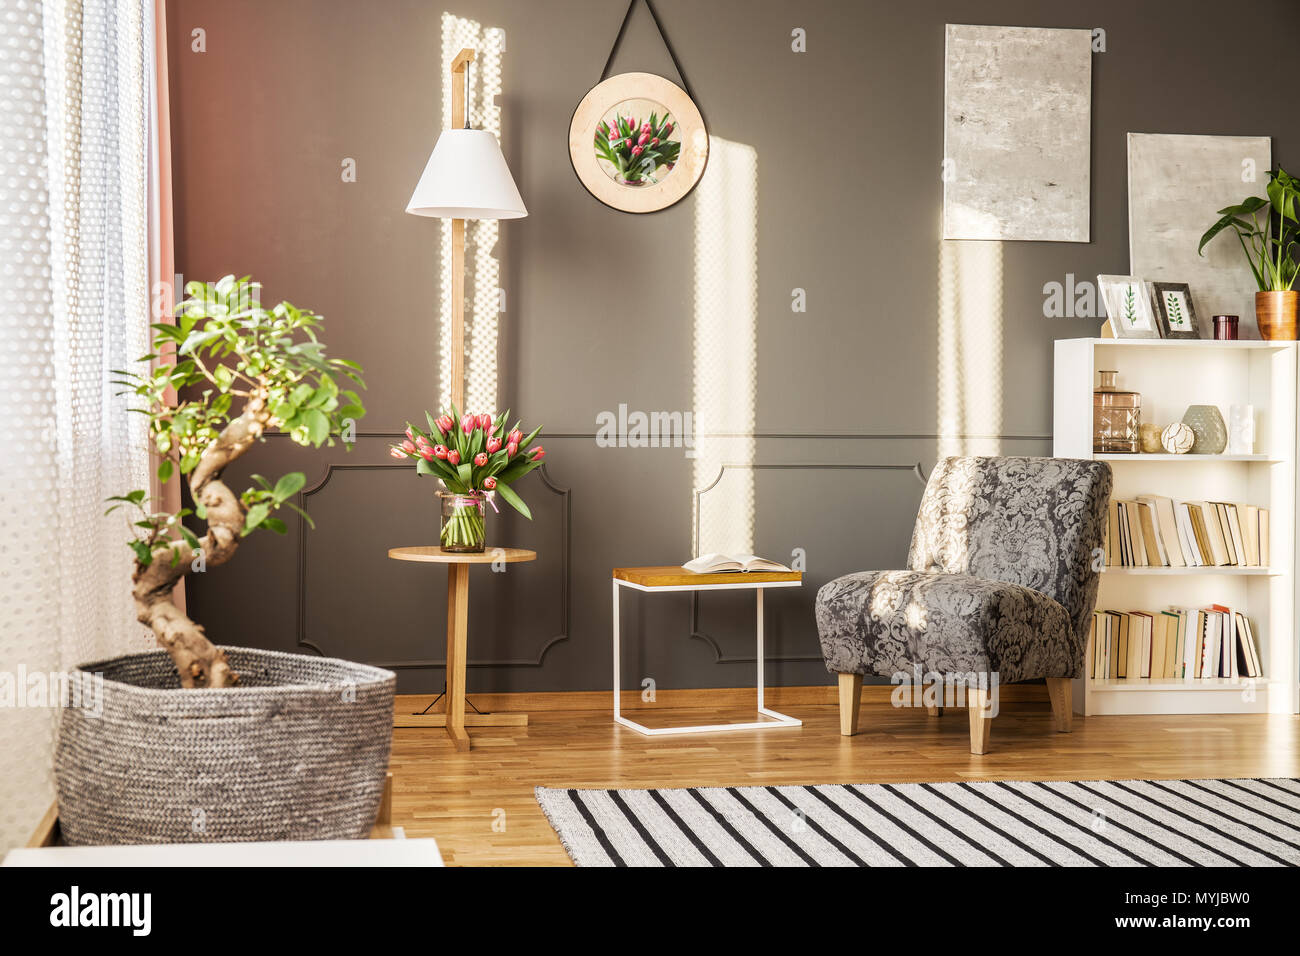 Bonsai Tree In A Fabric Pot Cover Tulips On Wooden Table Bookshelf And Patterned Armchair Living Room Interior